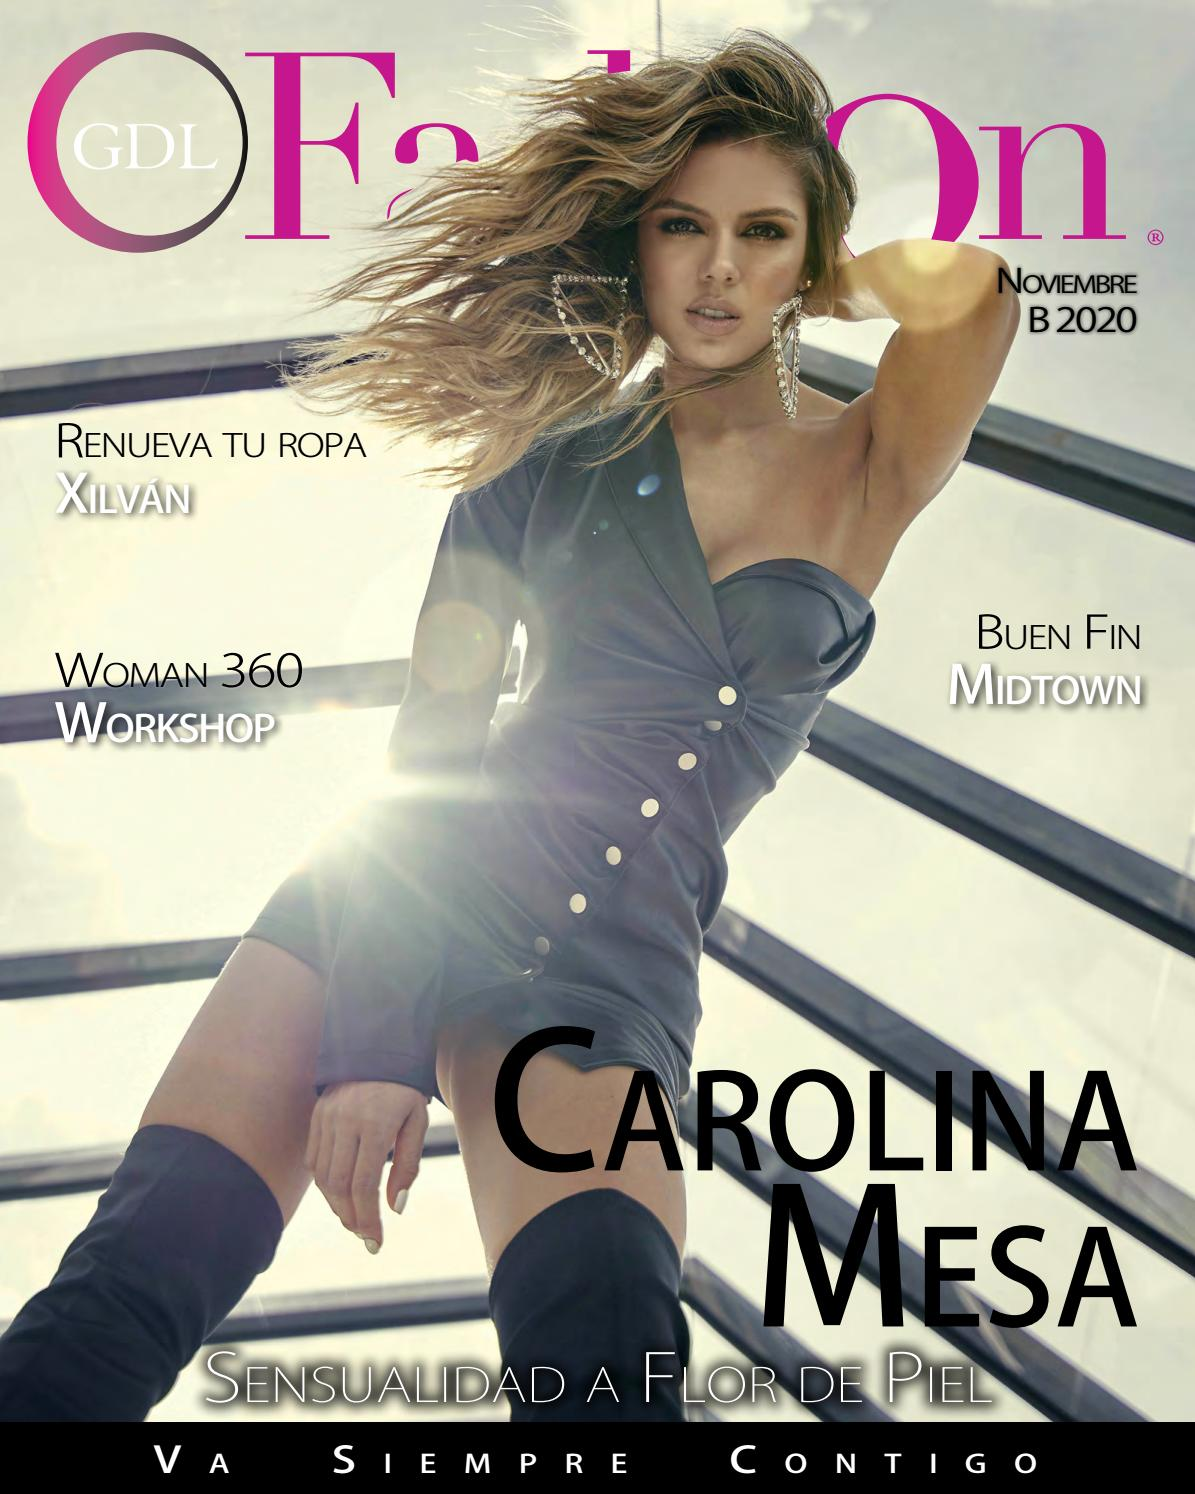 Carolina Mesa Sensualidad A Flor De Piel By Gdlfashion Issuu